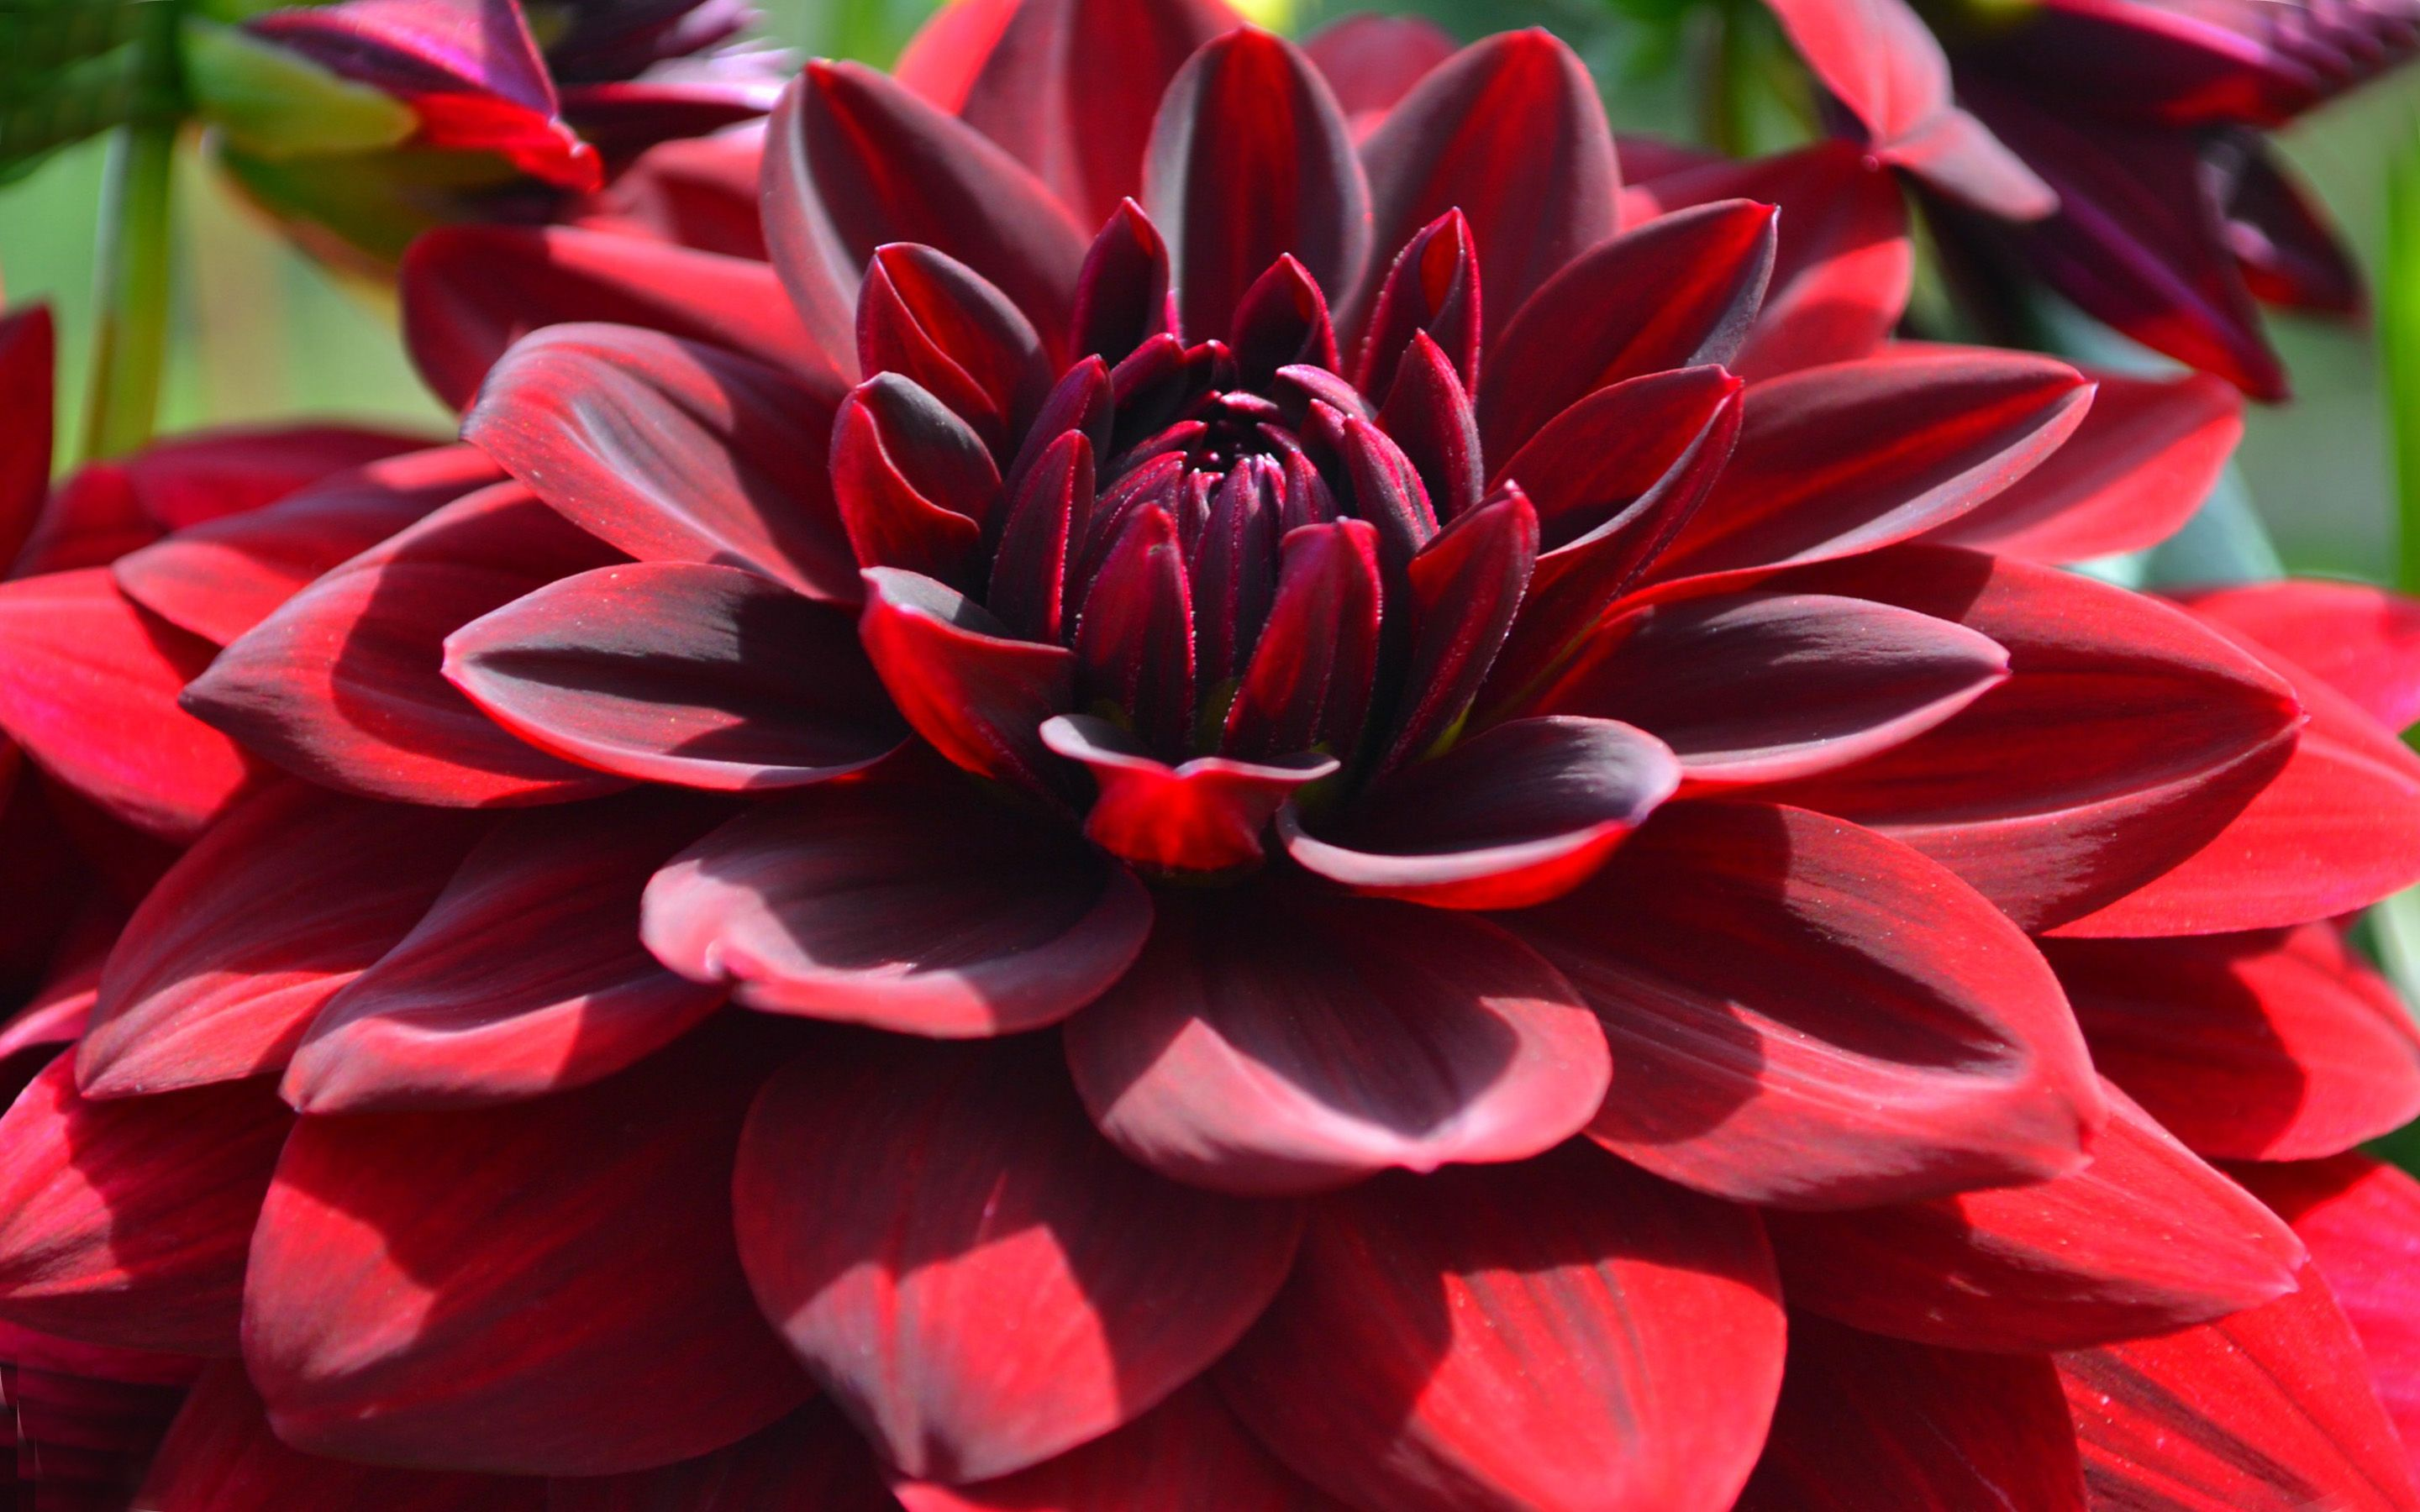 Download Red Dahlia Macro Flowers Desktop Hd Wallpapers For Mobile Phones And Computer 2880 1800 Flower Desktop Wallpaper Dahlia Flower Dahlia Flower Pictures